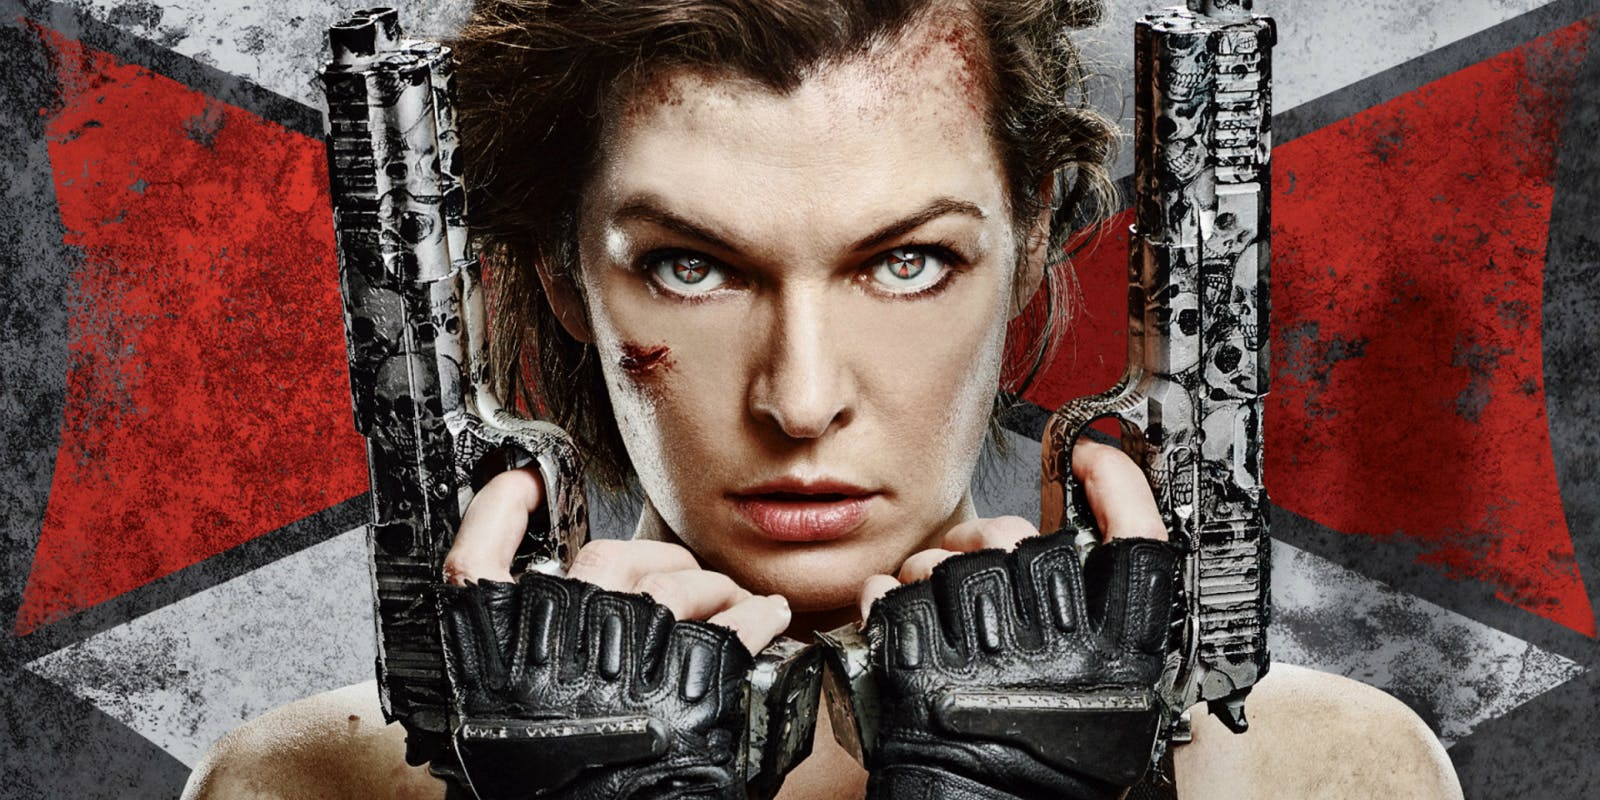 Resident Evil Star Milla Jovovich Reveals Her Nightmare Abortion Experience